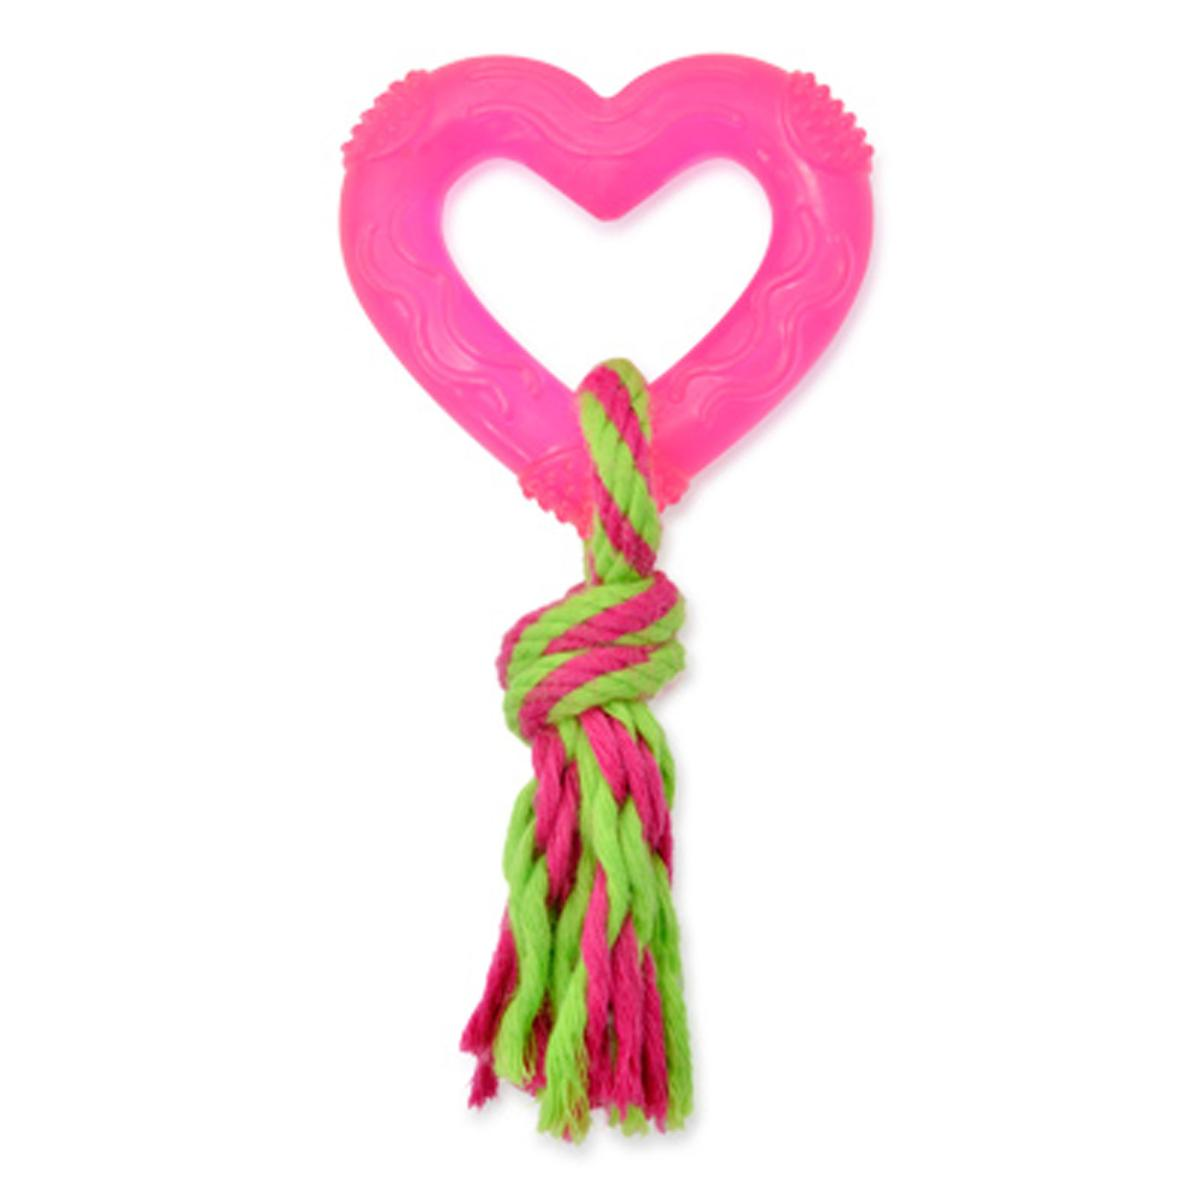 Ancol Rubber Puppy Teether Heart N Rope